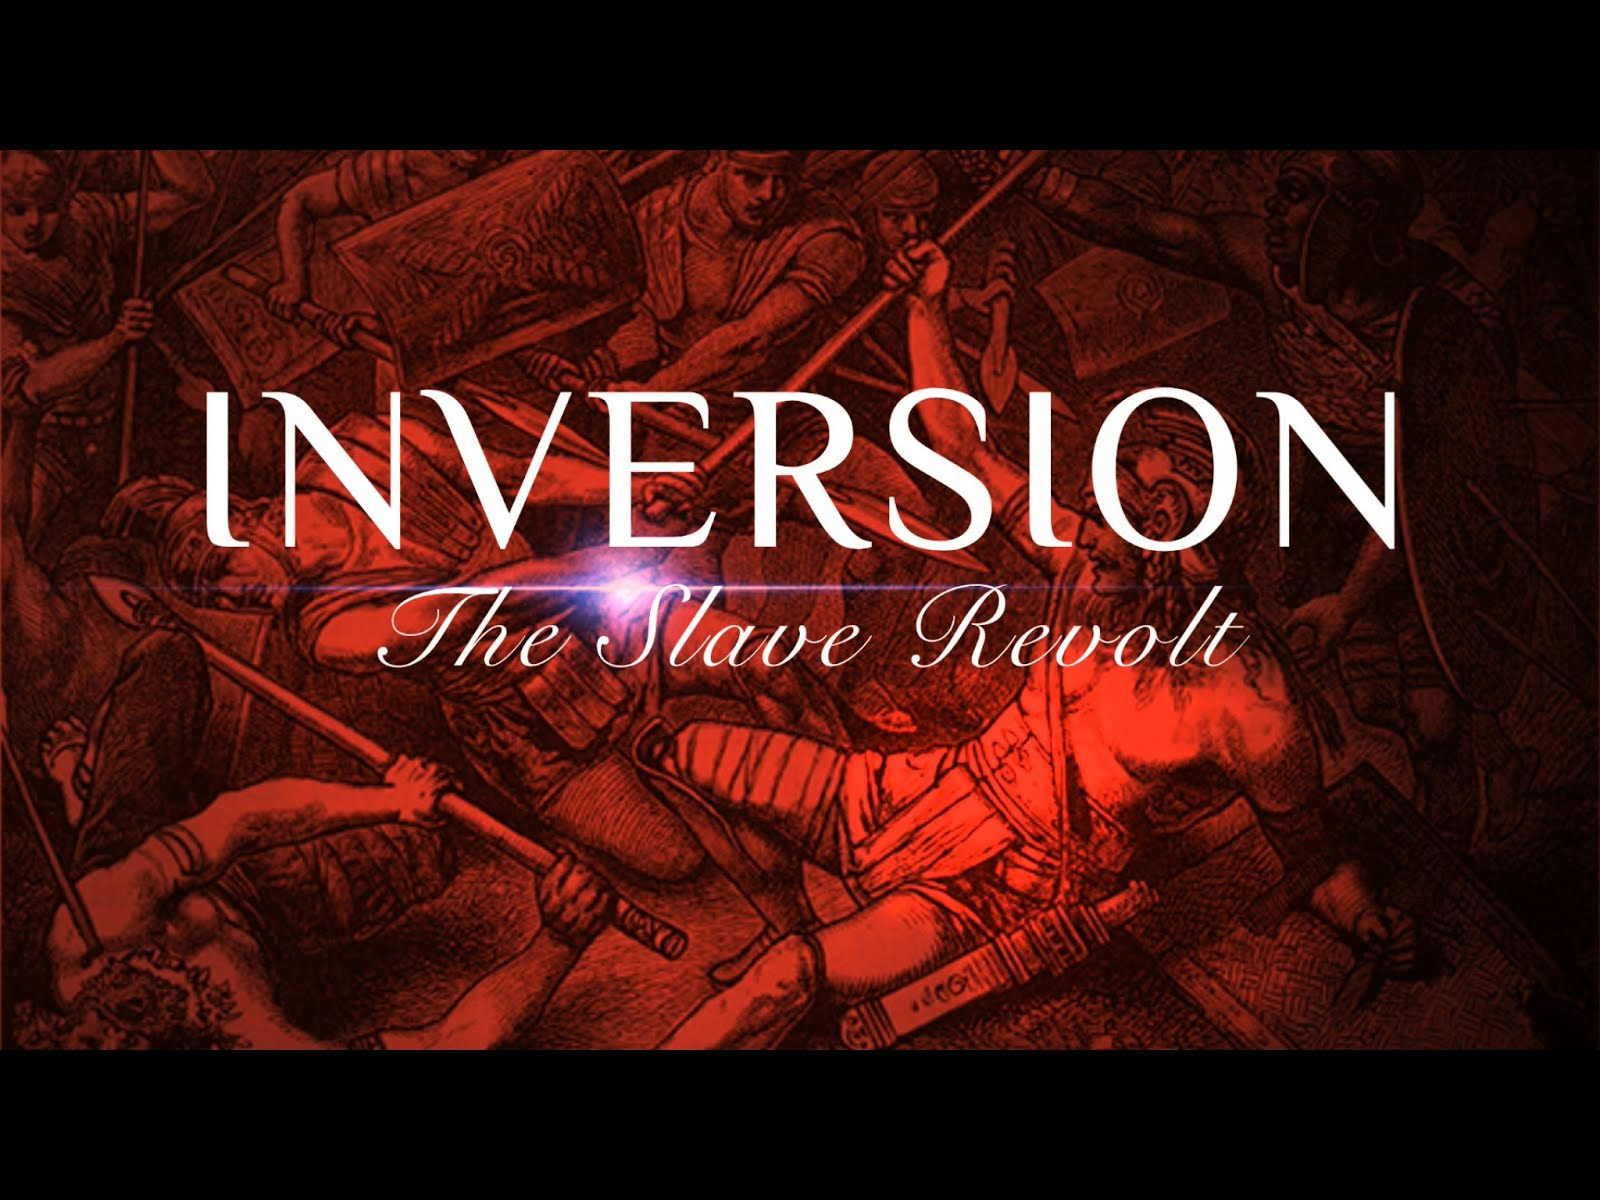 Inversion: The Slave Revolt (video)